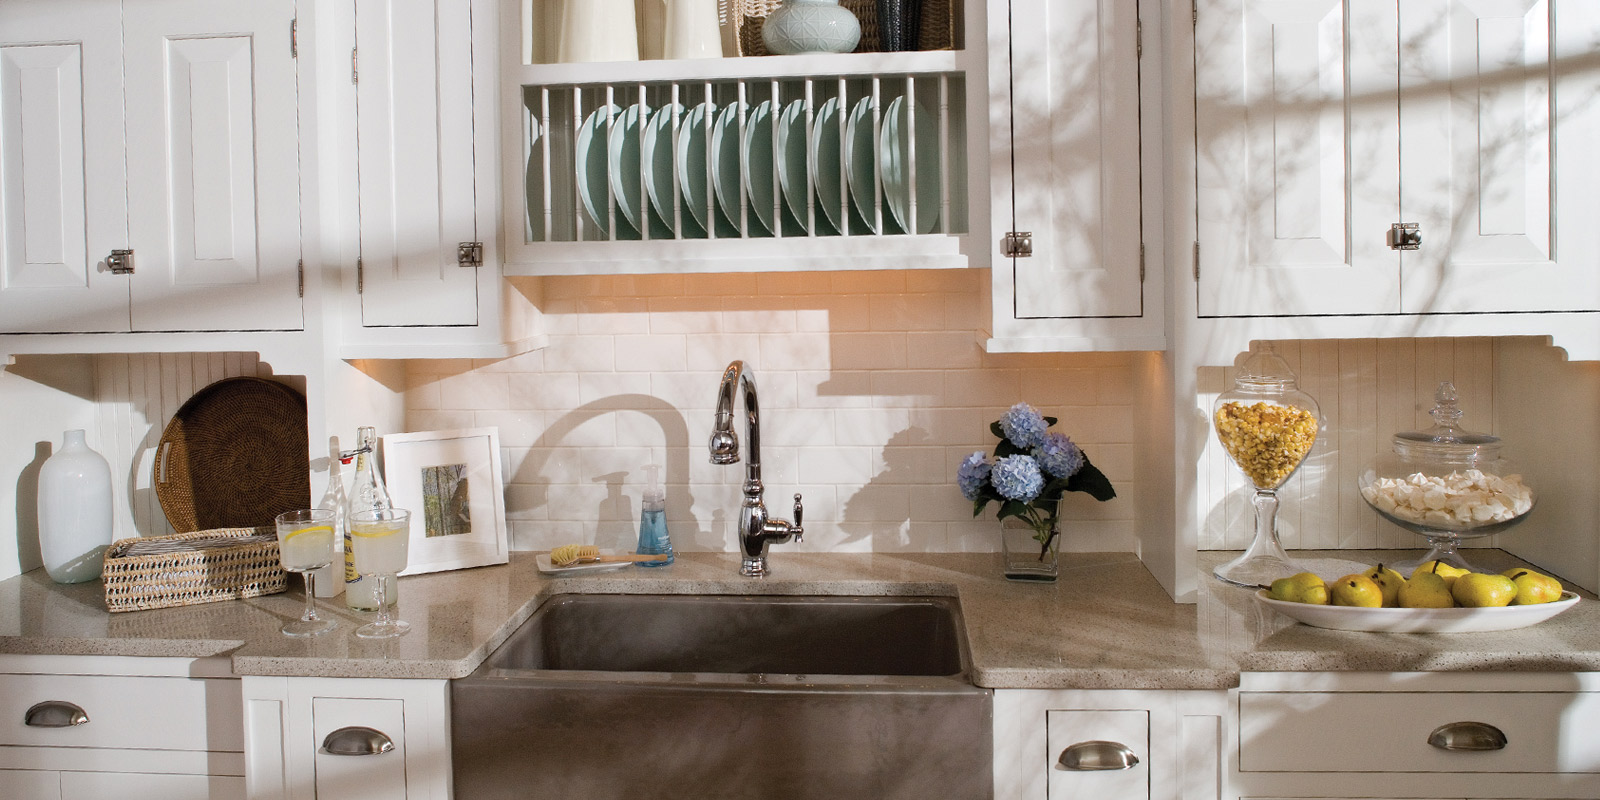 Marchand Creative Kitchens Remodeling Tips and Sub-Zero Refrigerators for your New Orleans Kitchen